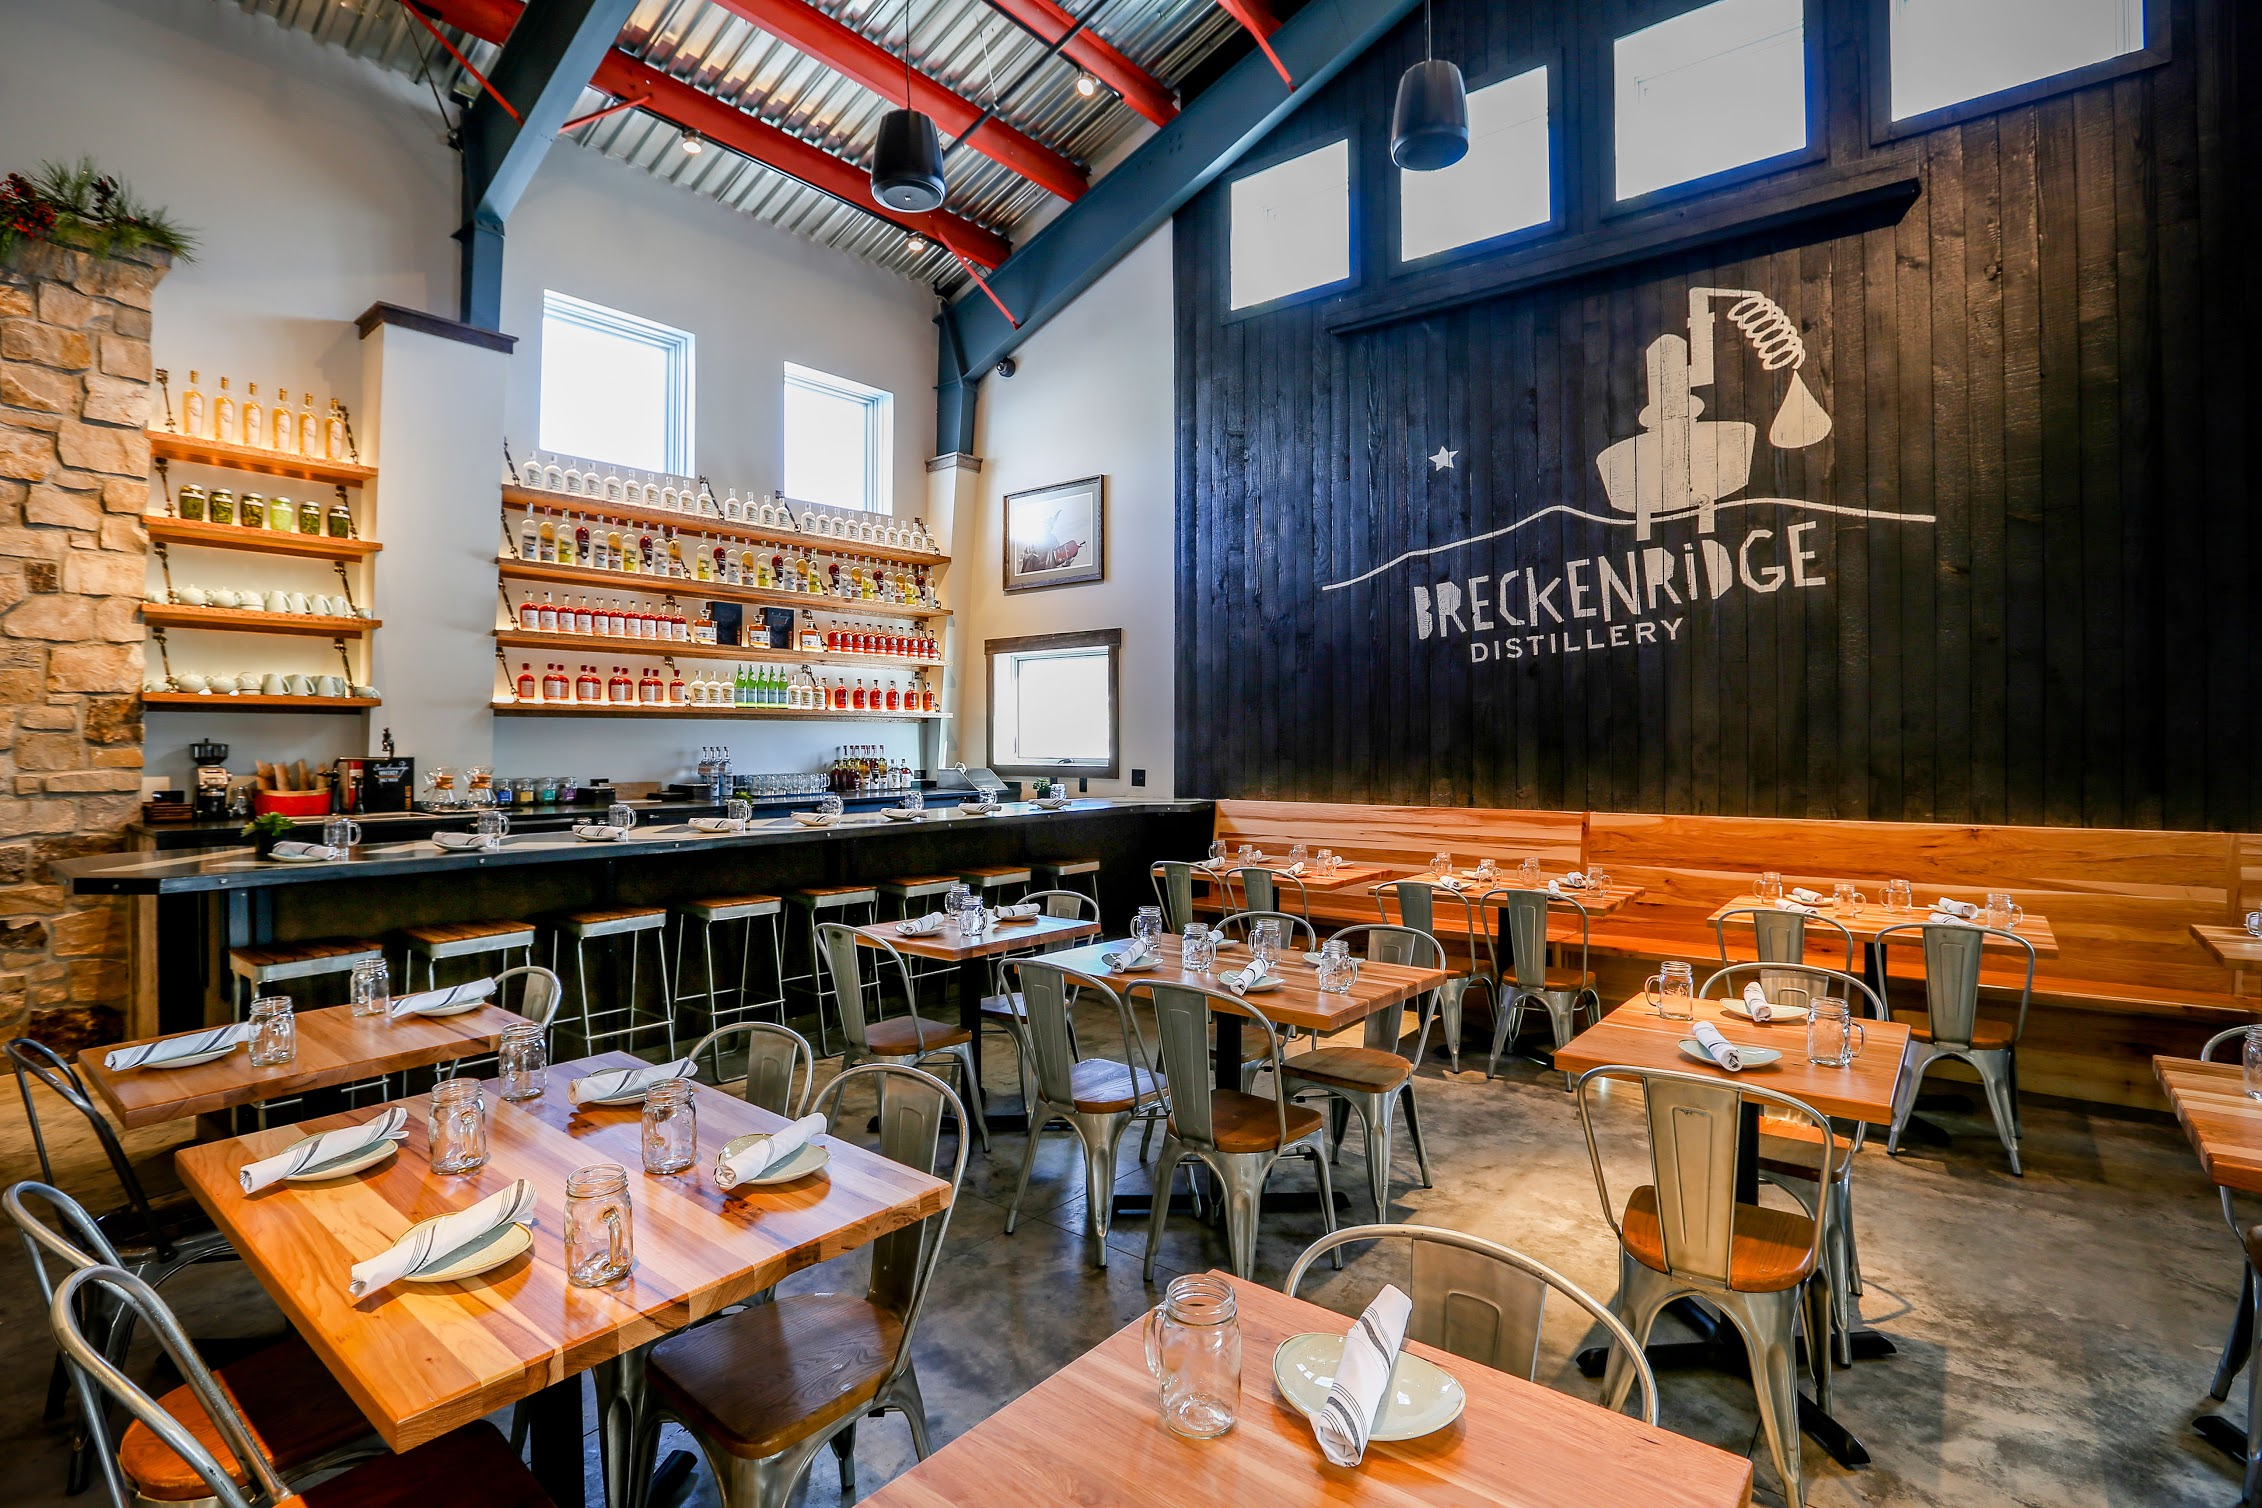 Breckenridge Distillery Restaurant Releases New Menu By